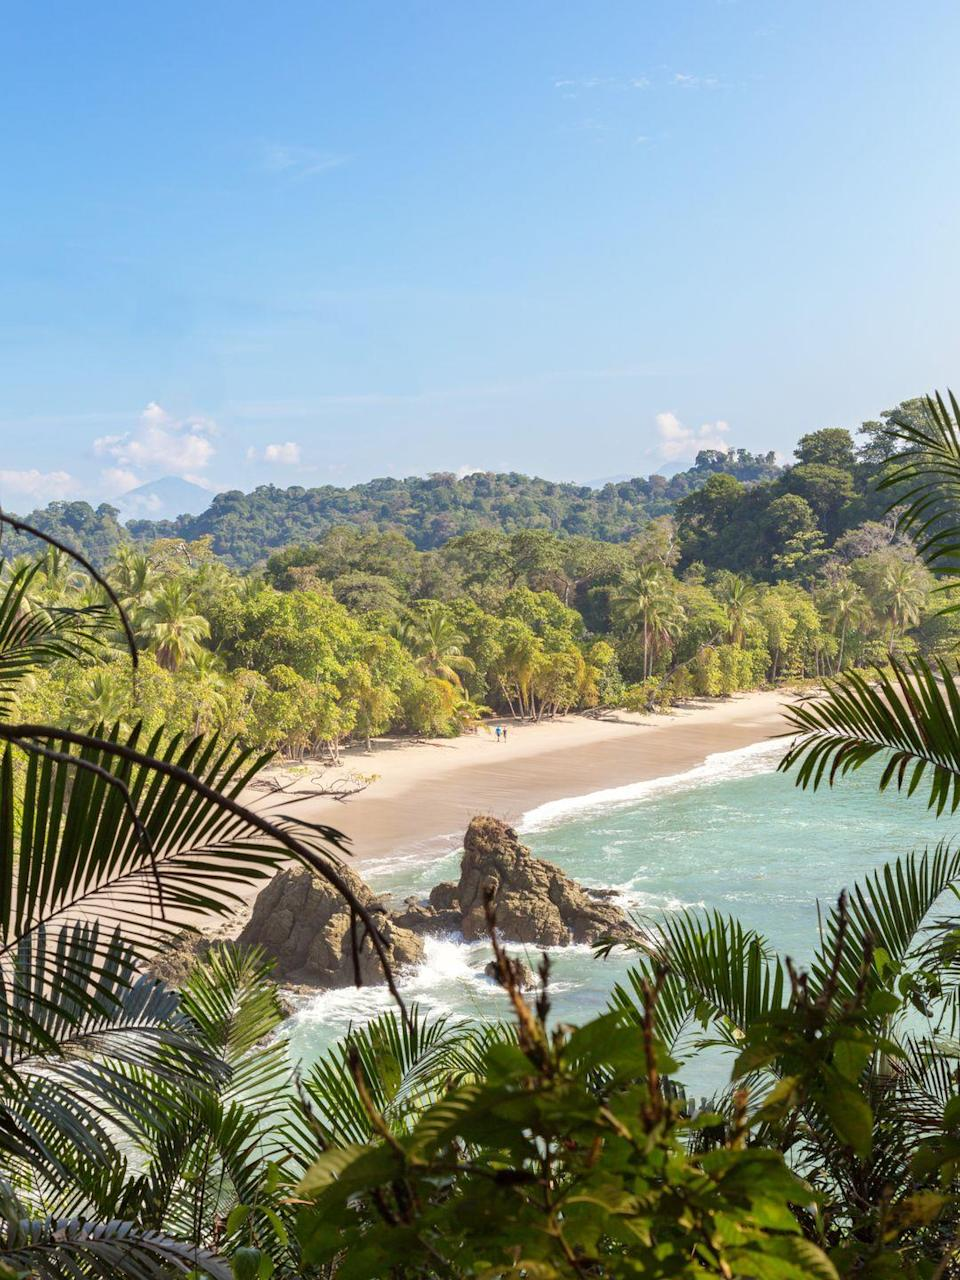 <p>Costa Rica has over 750 miles of shoreline, but Playa Manuel Antonio on the Pacific coast is one of the most popular.</p>